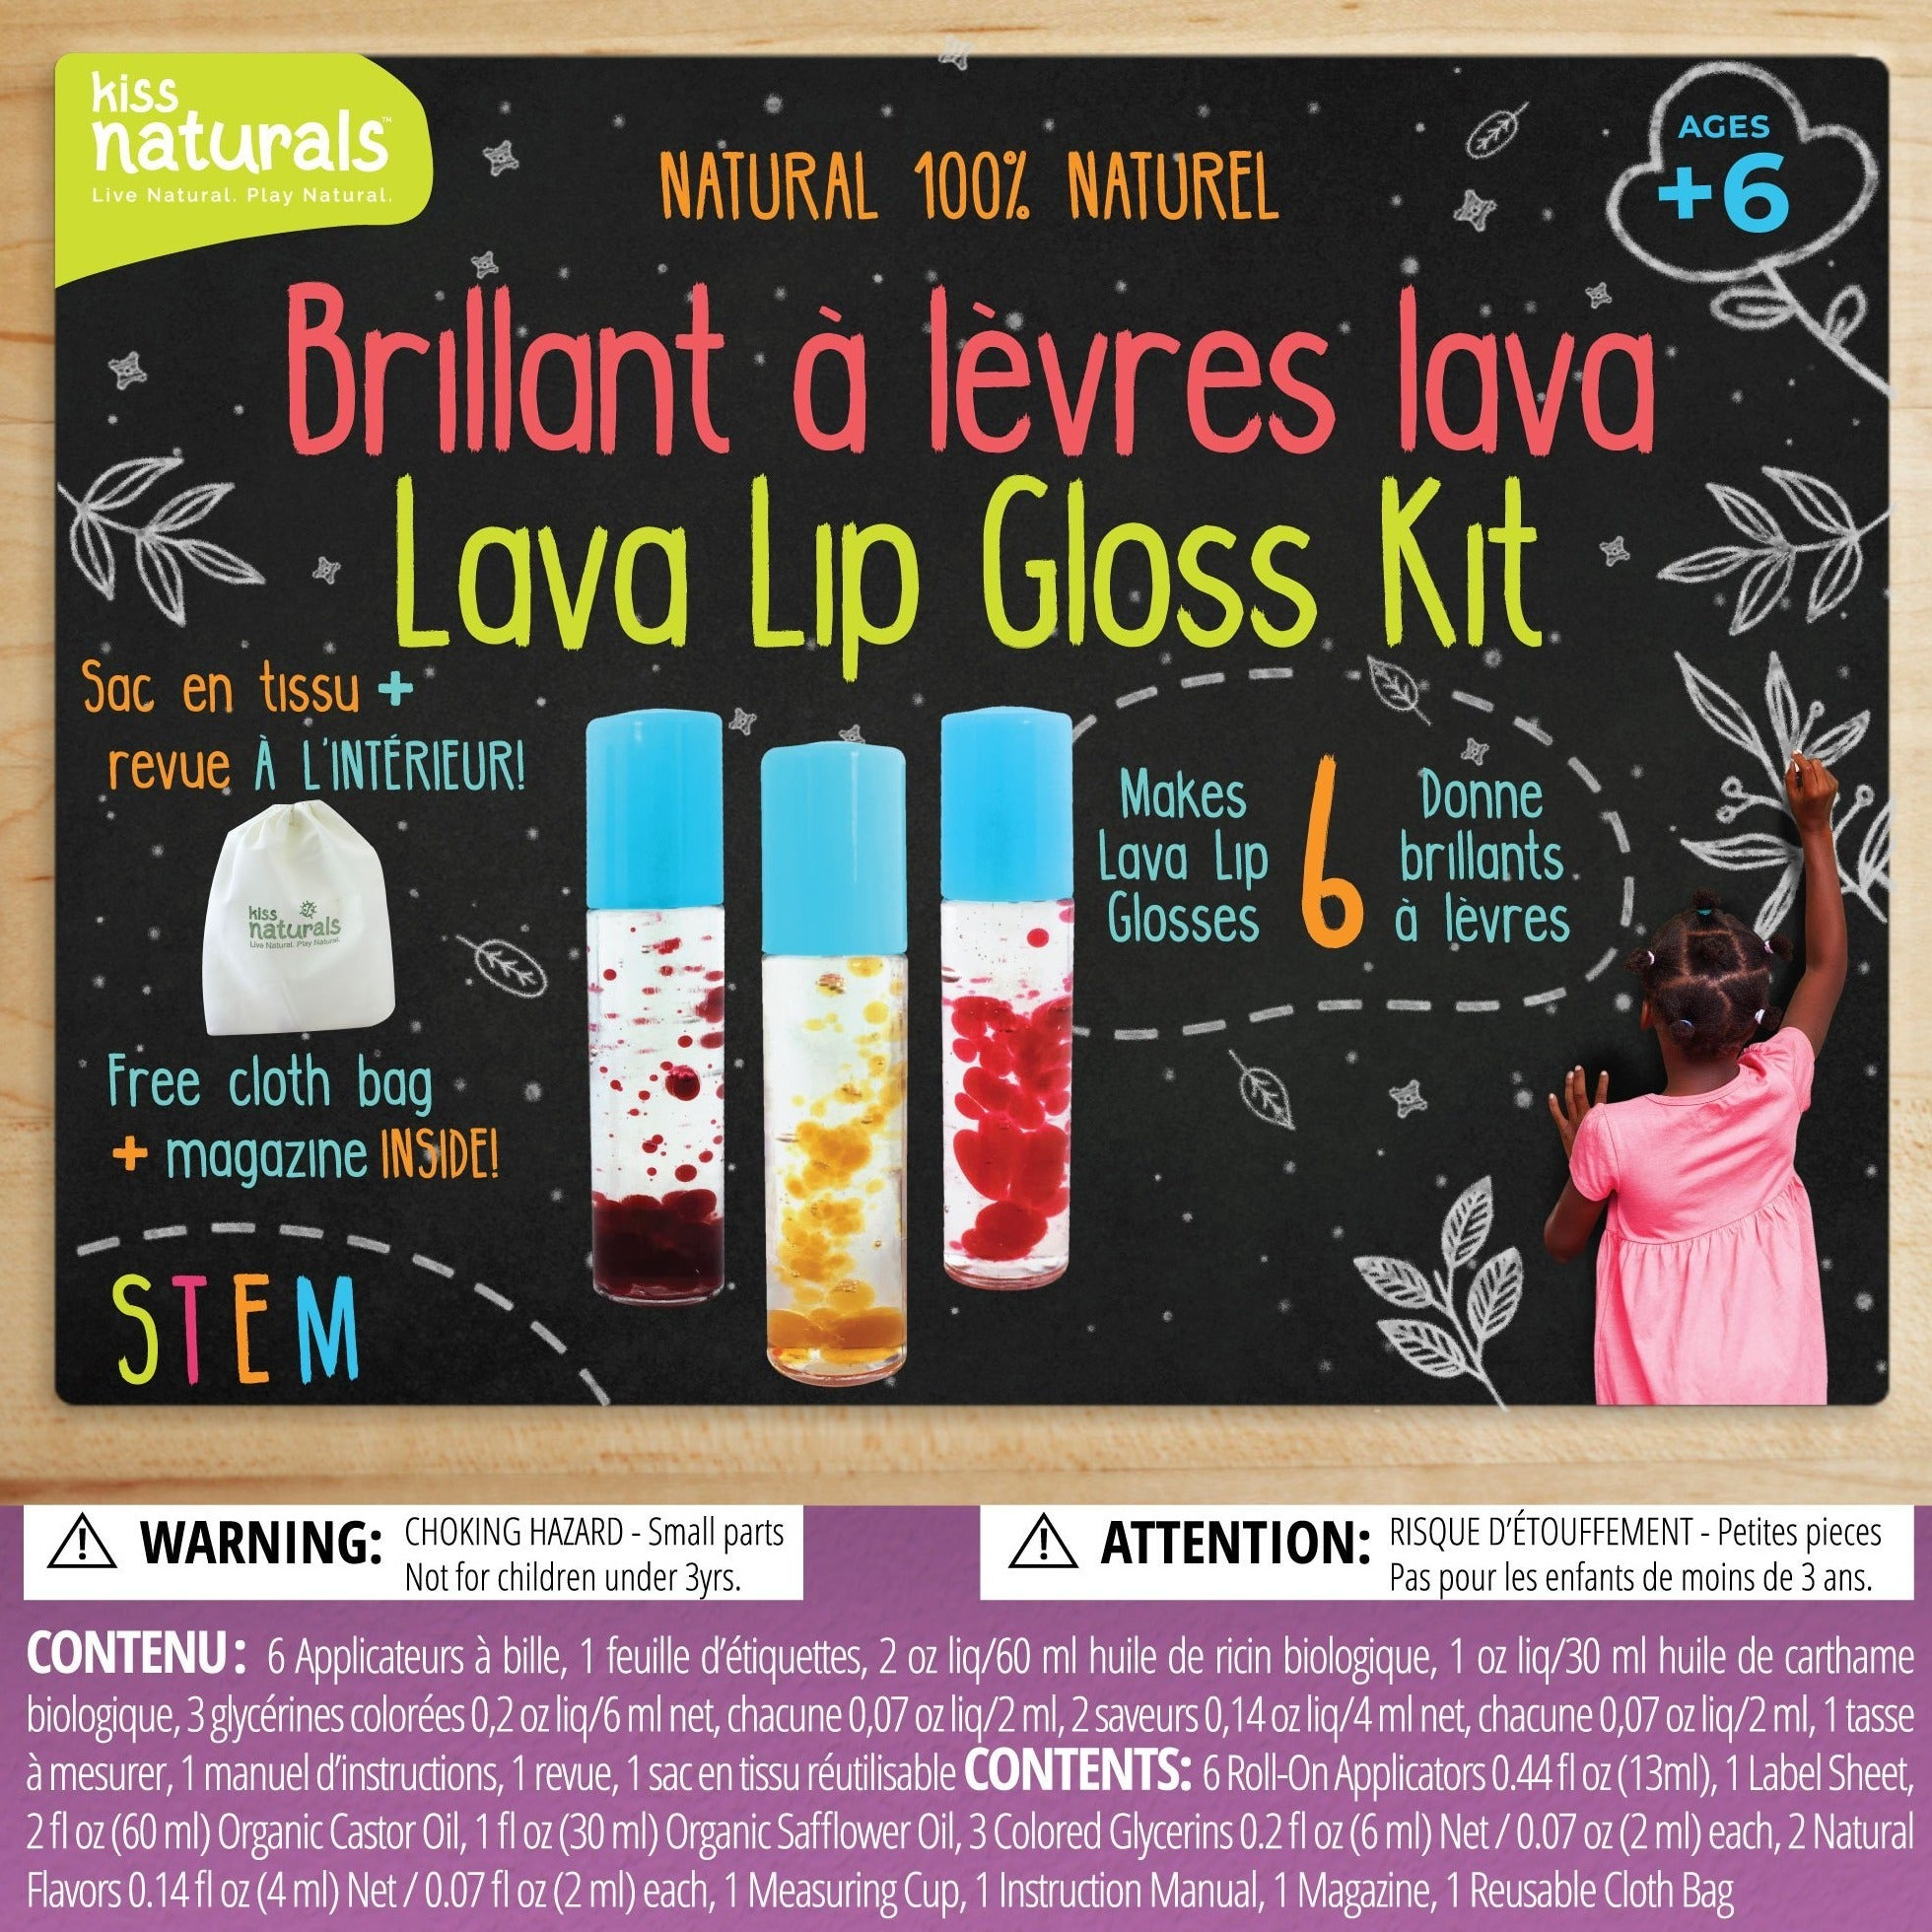 Kiss Naturals - DIY Lava Lip Gloss Kit Home School Art Project All Things Being Eco